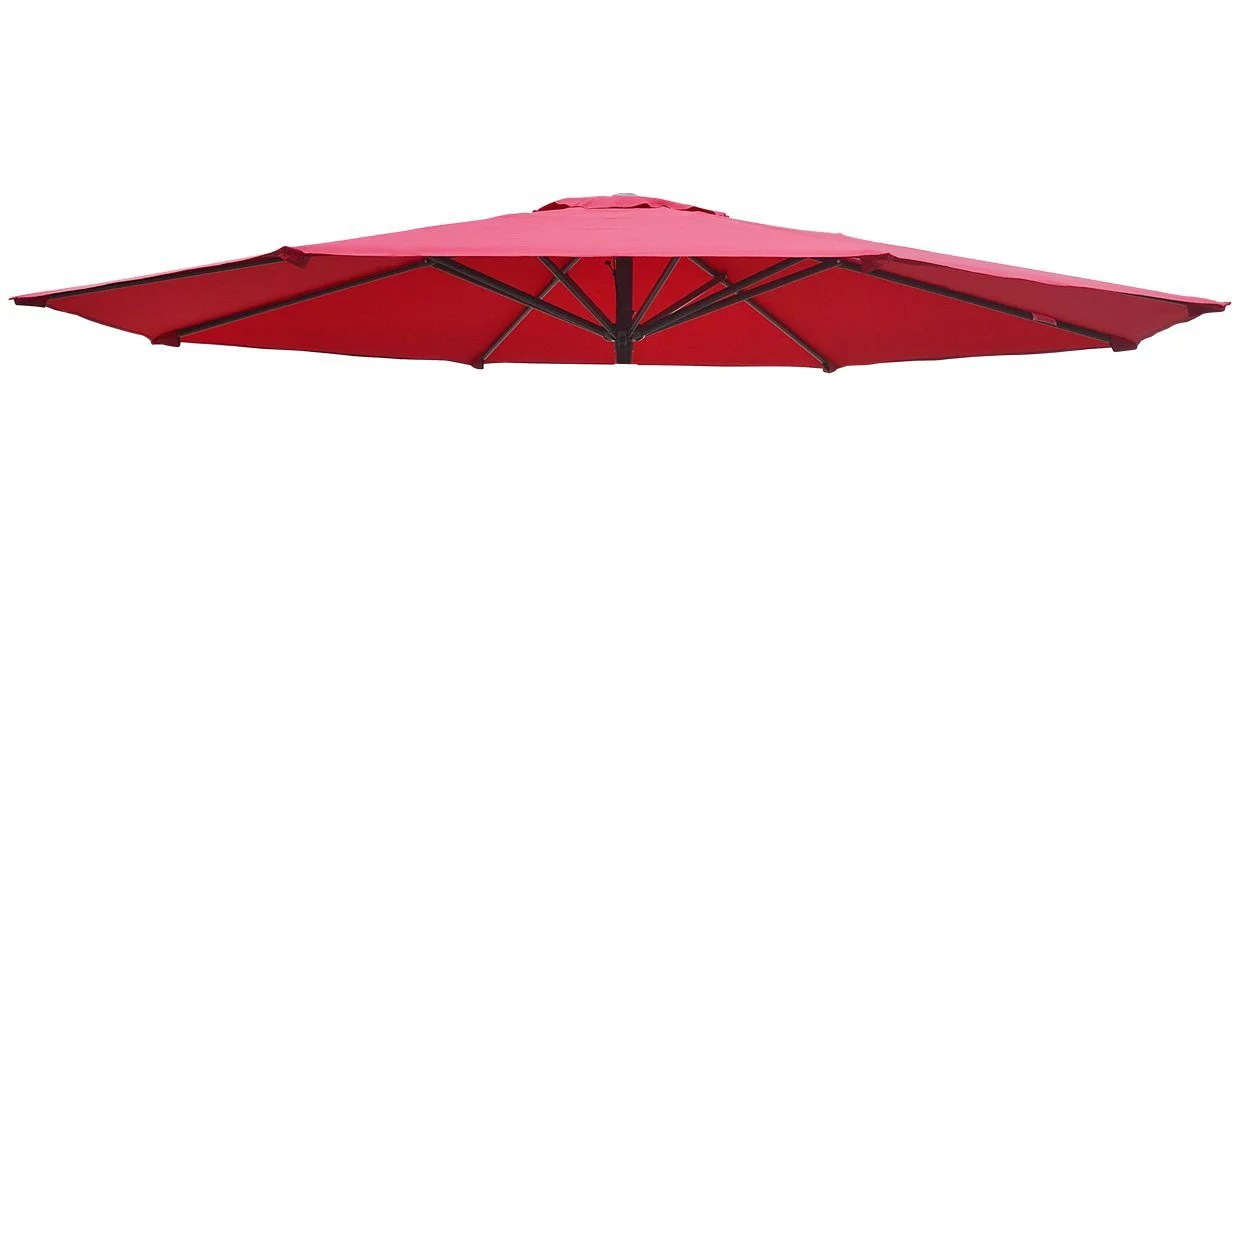 replacement patio umbrella canopy cover for 9ft 8 ribs umbrella burgundy canopy only